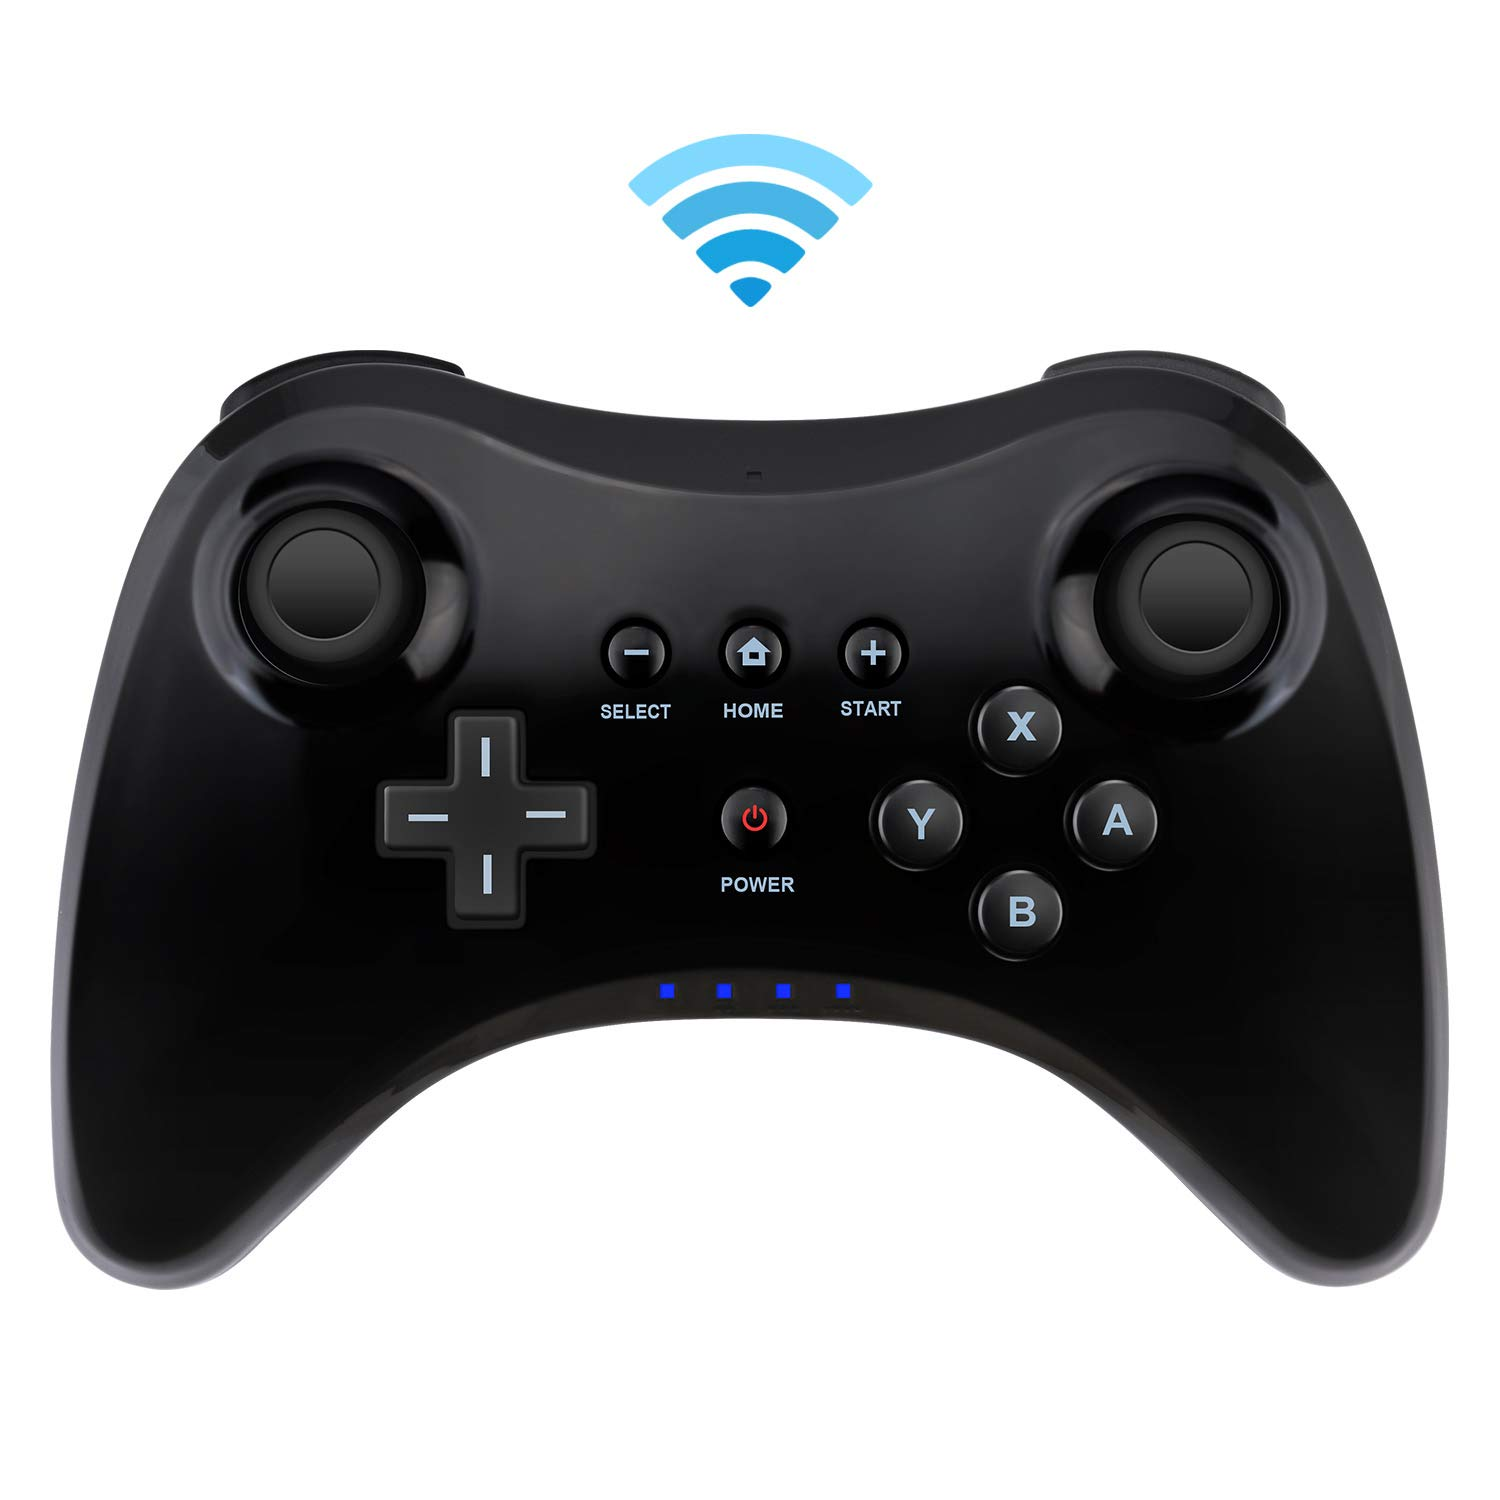 Controller for Wii U,Bigaint Wireless Pro Controller for Nintendo Wii U Dual Analog Game Controller by Bigaint